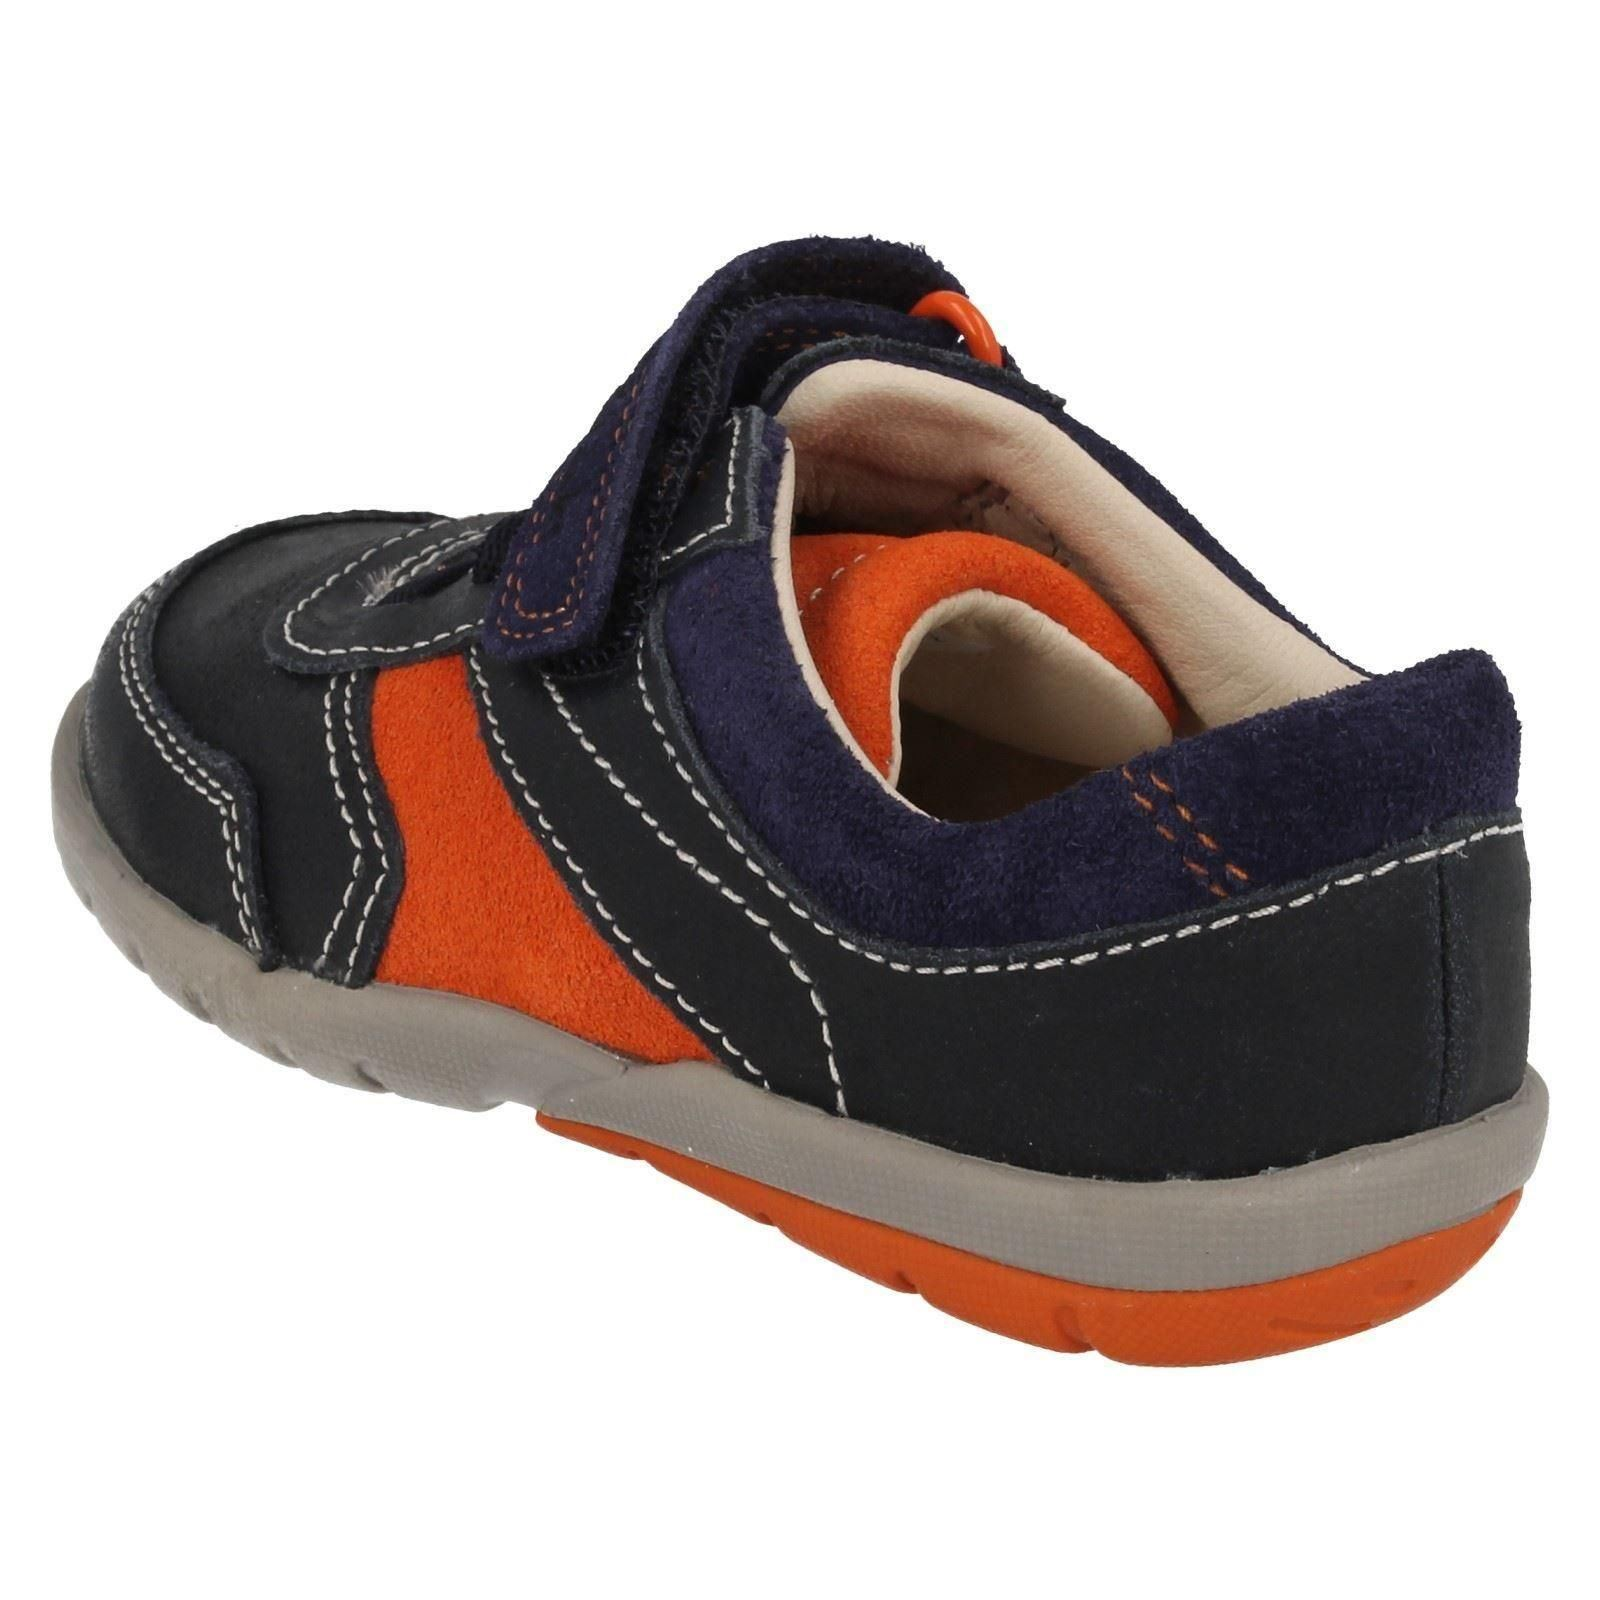 Clarks Boys Leather First Shoes Softly Lee